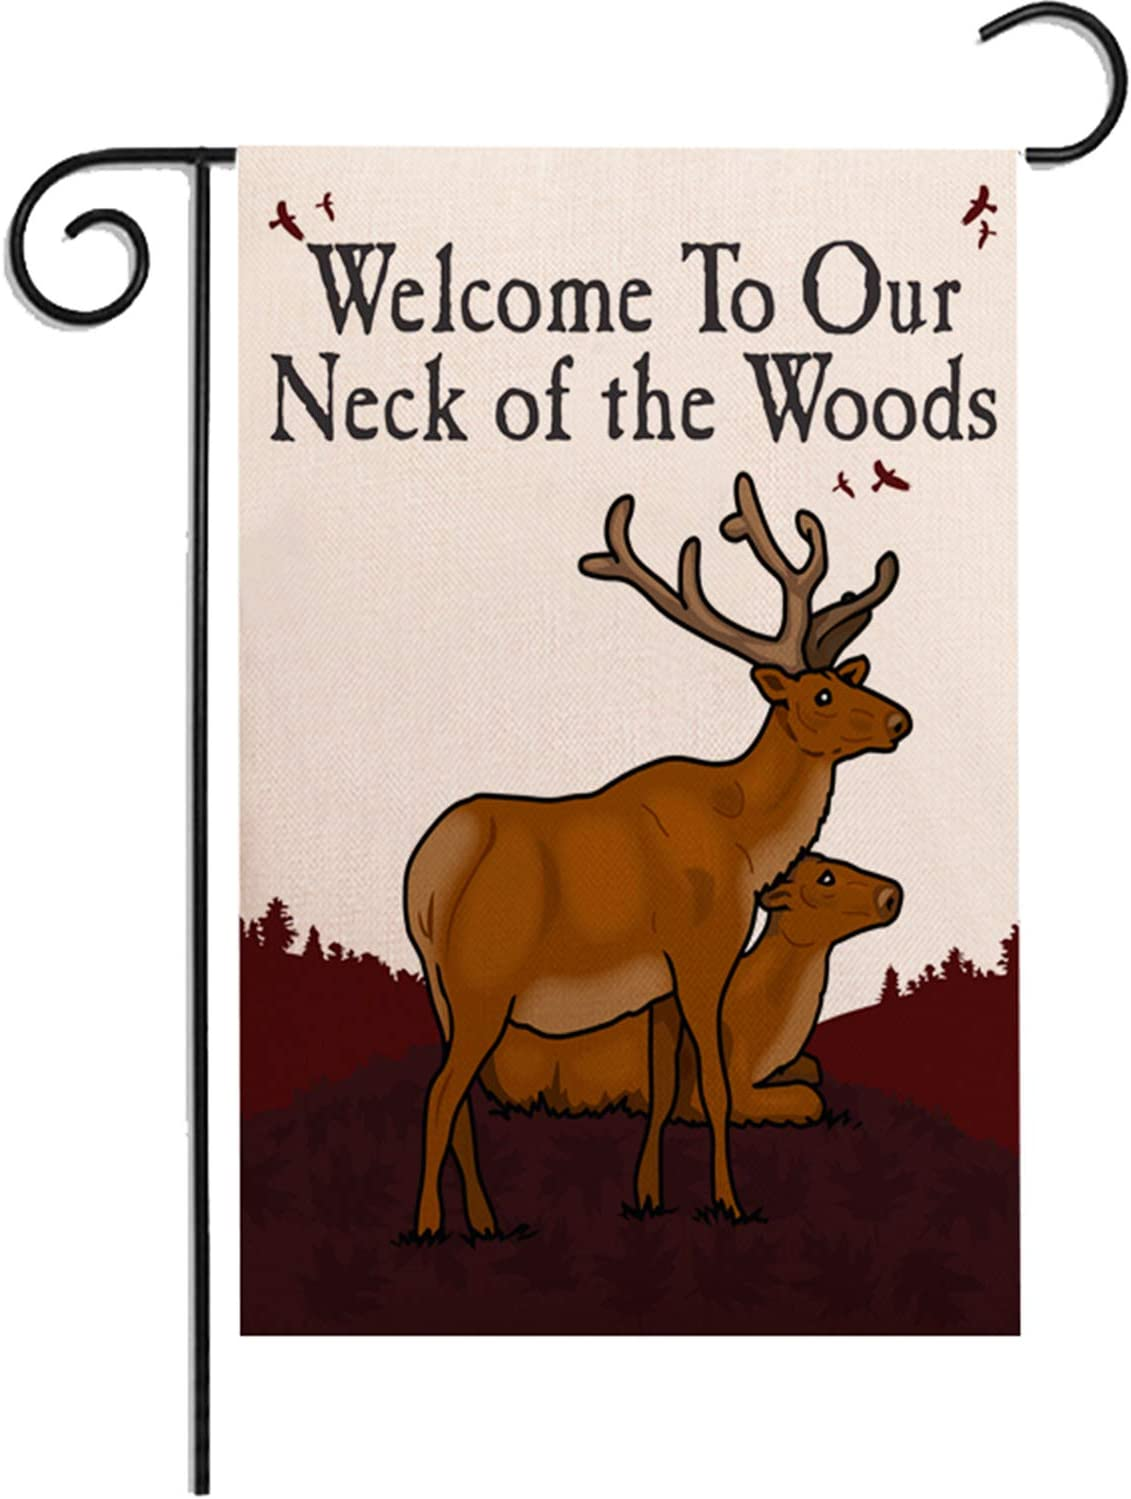 Munzong Welcome to Our Neck of The Woods Garden Flag 12.5 x 18 Inch, Double Sided Burlap Deer Rustic Lawn Flags, Camp Cabin Nature Outdoor Decorative Hobbies Hunting Decor Gift for Friend